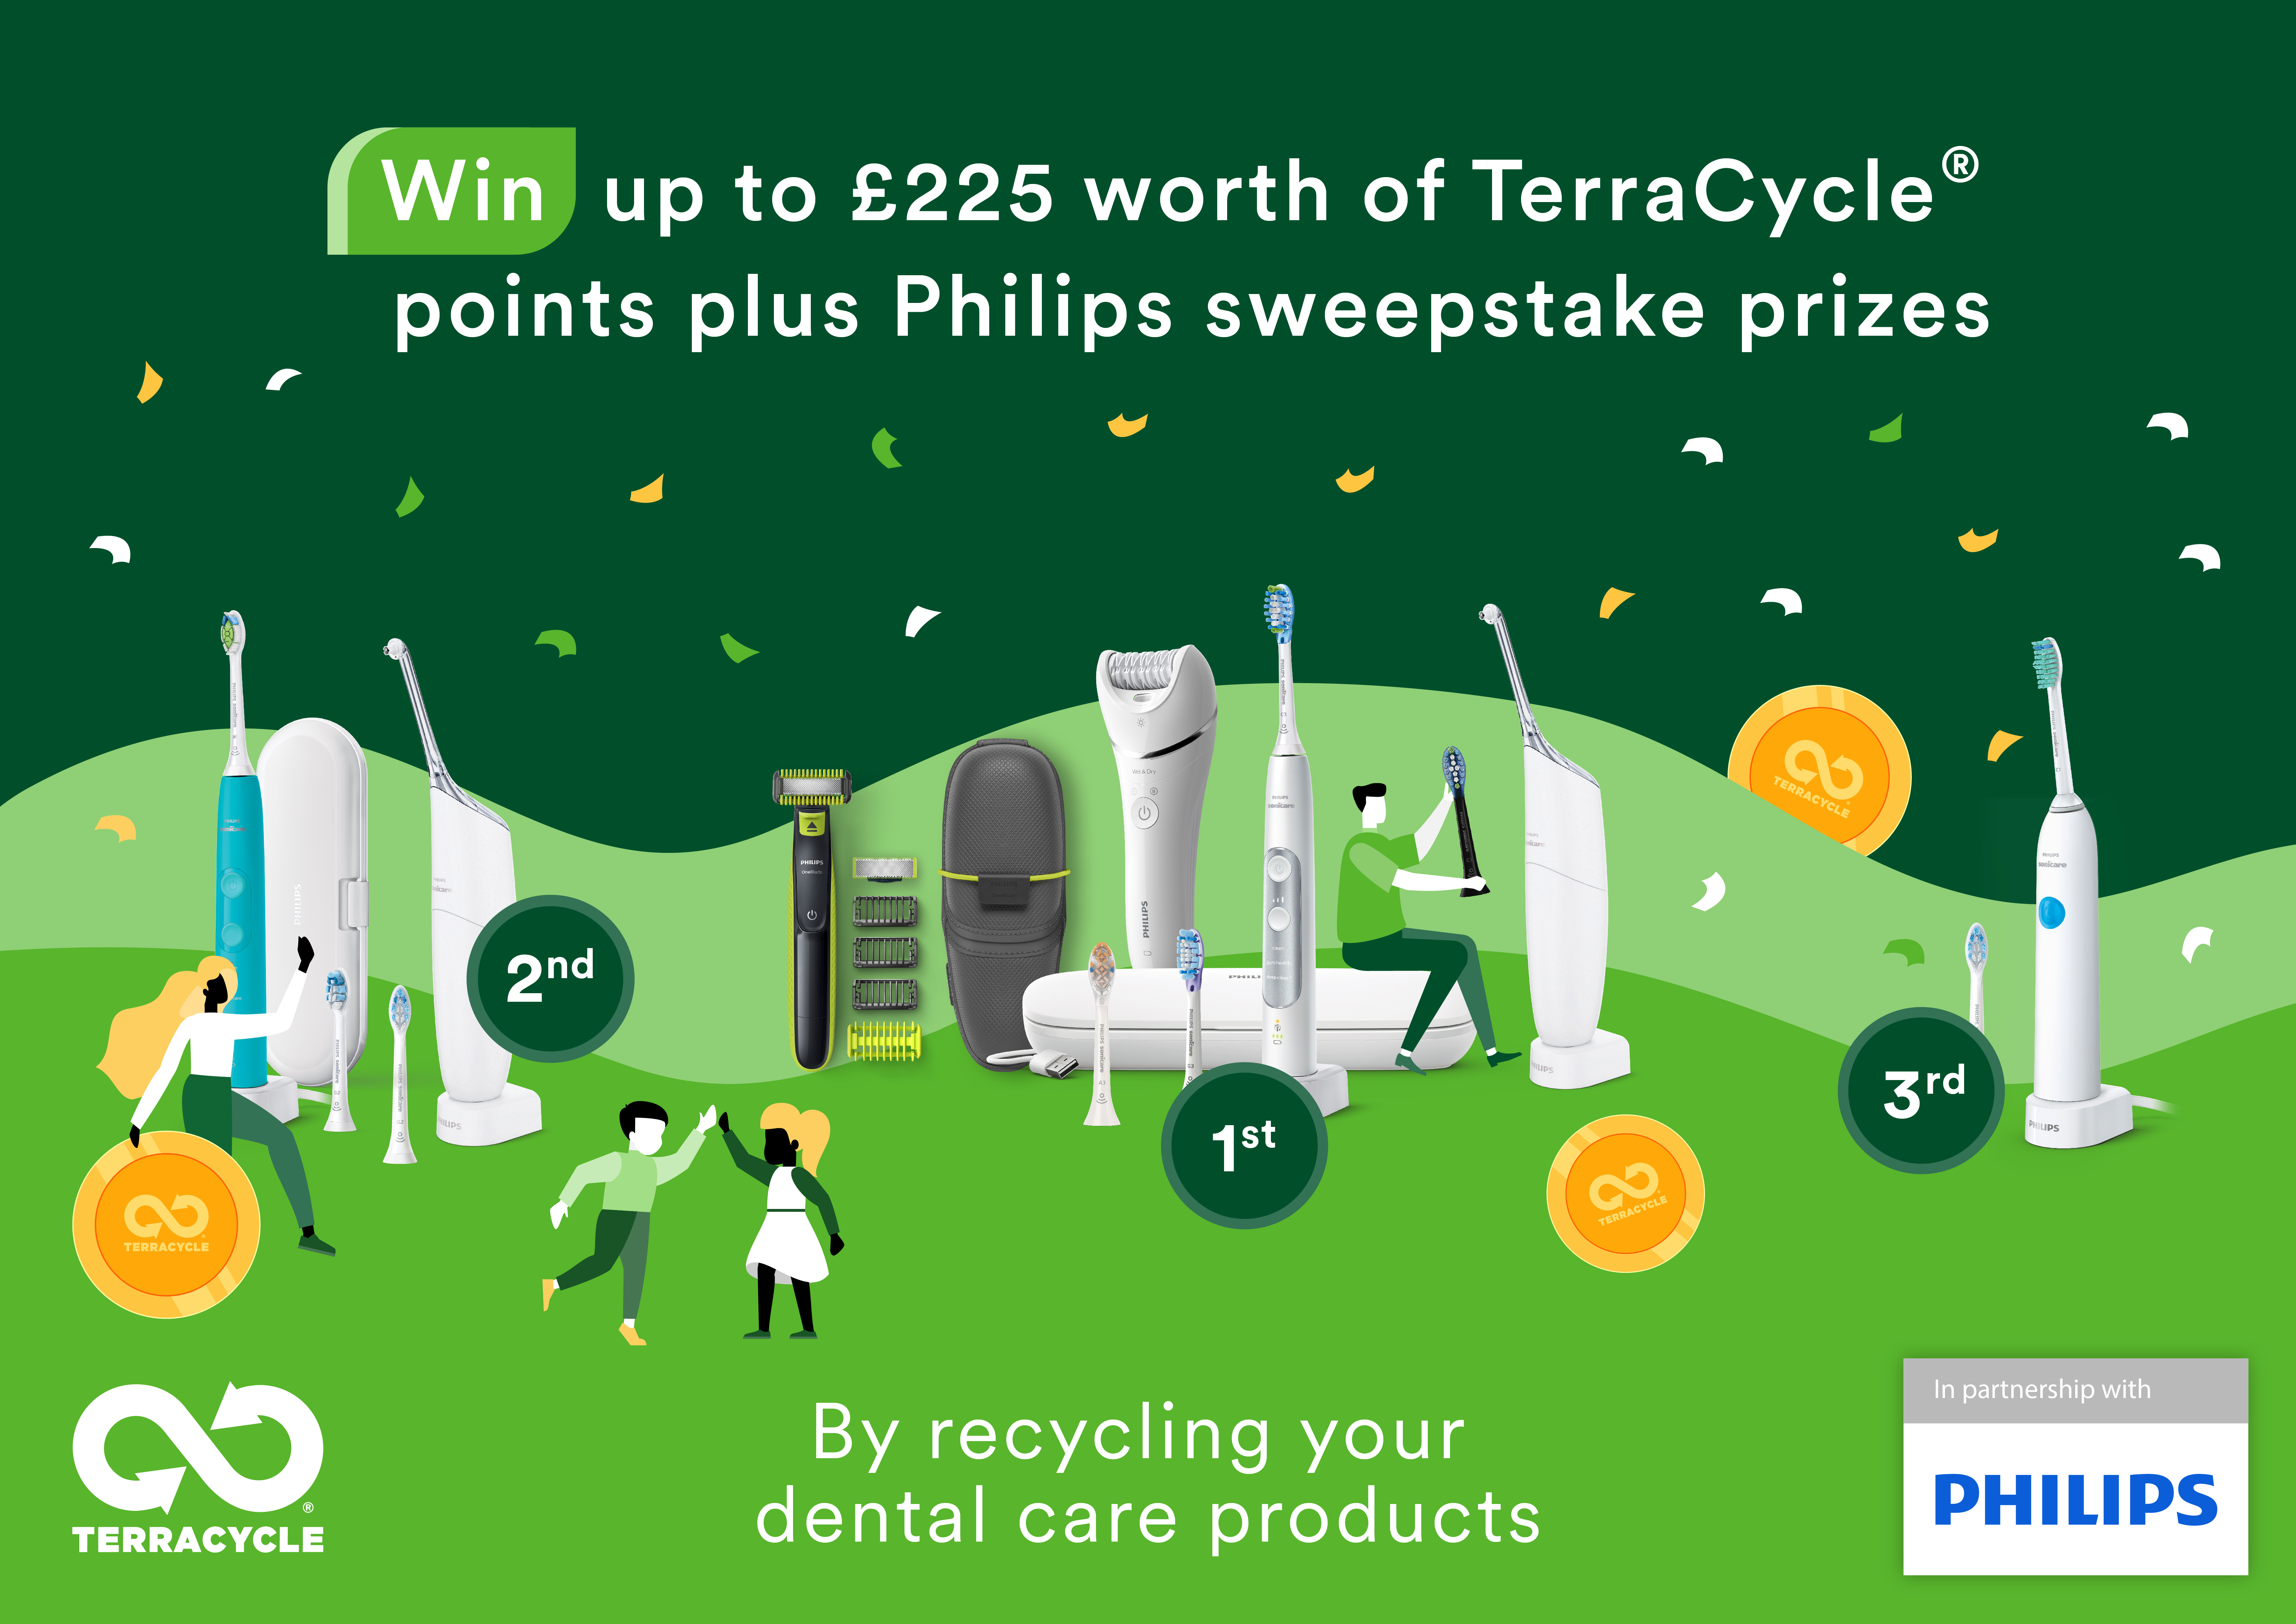 * 1 TerraCycle point is worth £0.01.